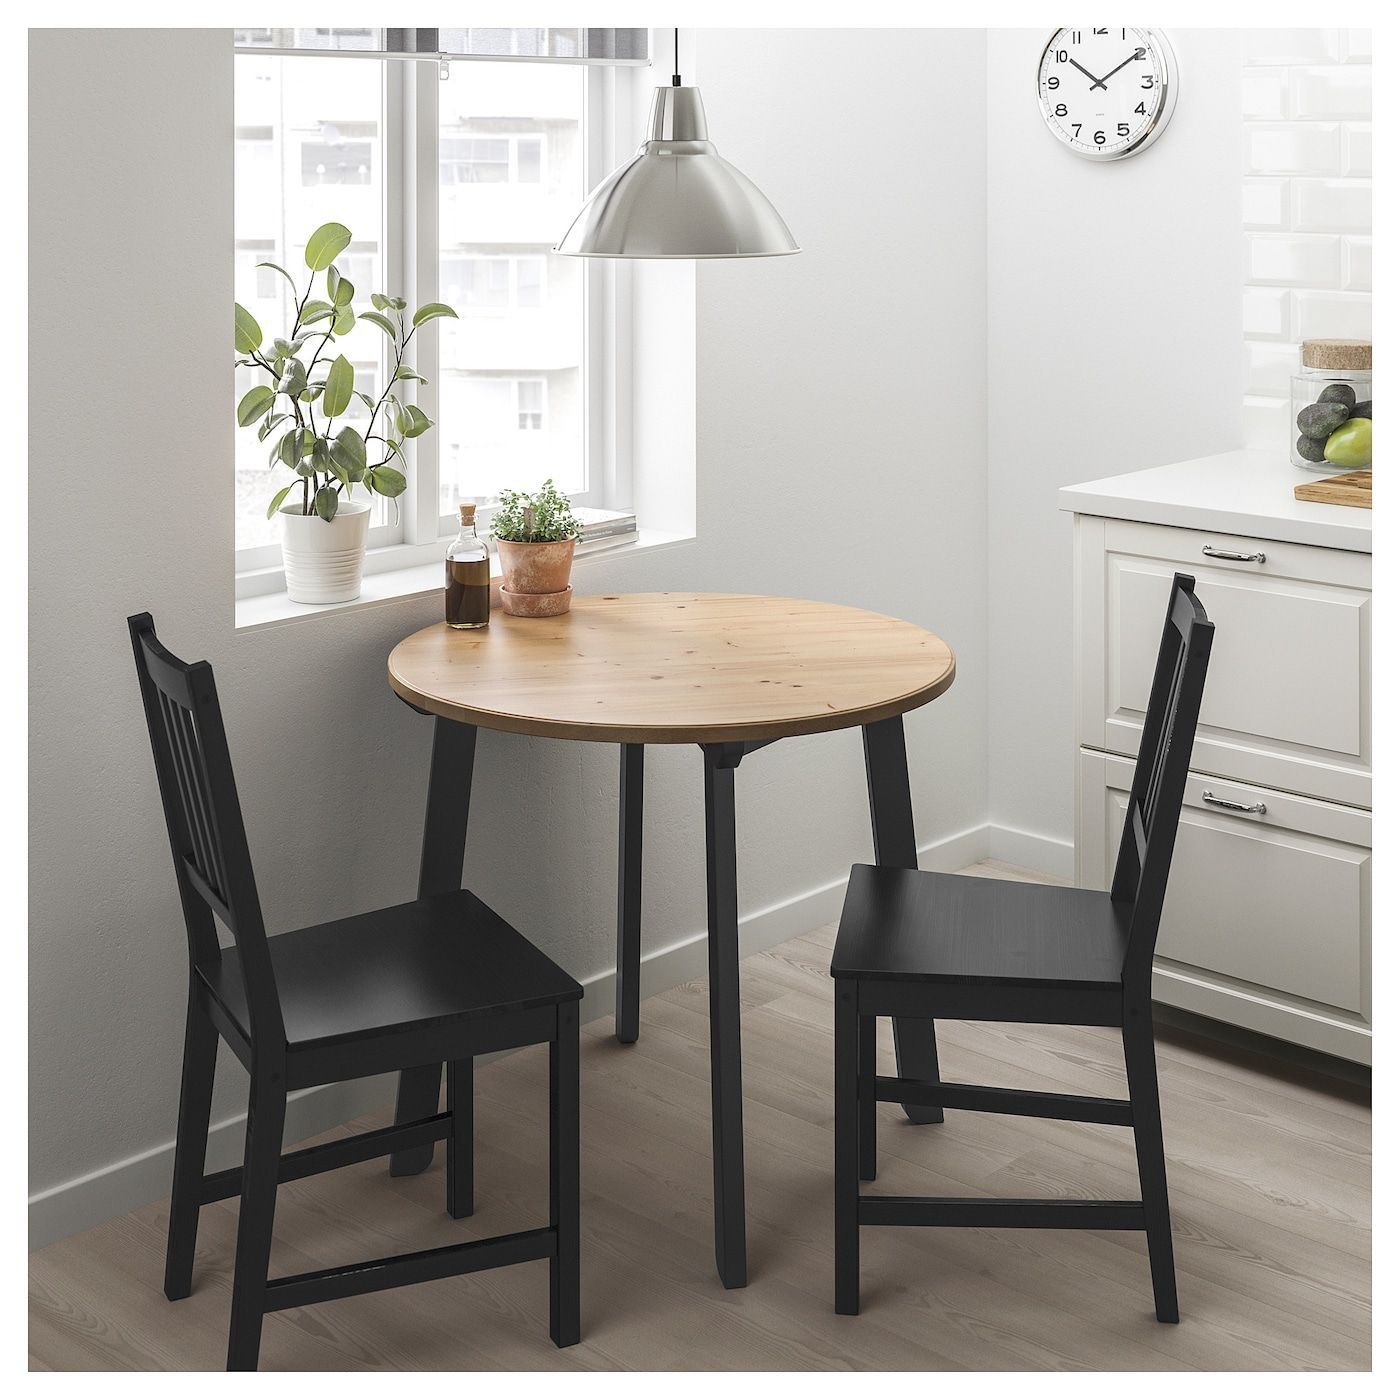 Kitchen Table Sets Ikea Chairs White Round Top Table Dark Floor Window Wall Cabinets Stove Small Round Kitchen Table Dining Table In Kitchen Small Dining Table